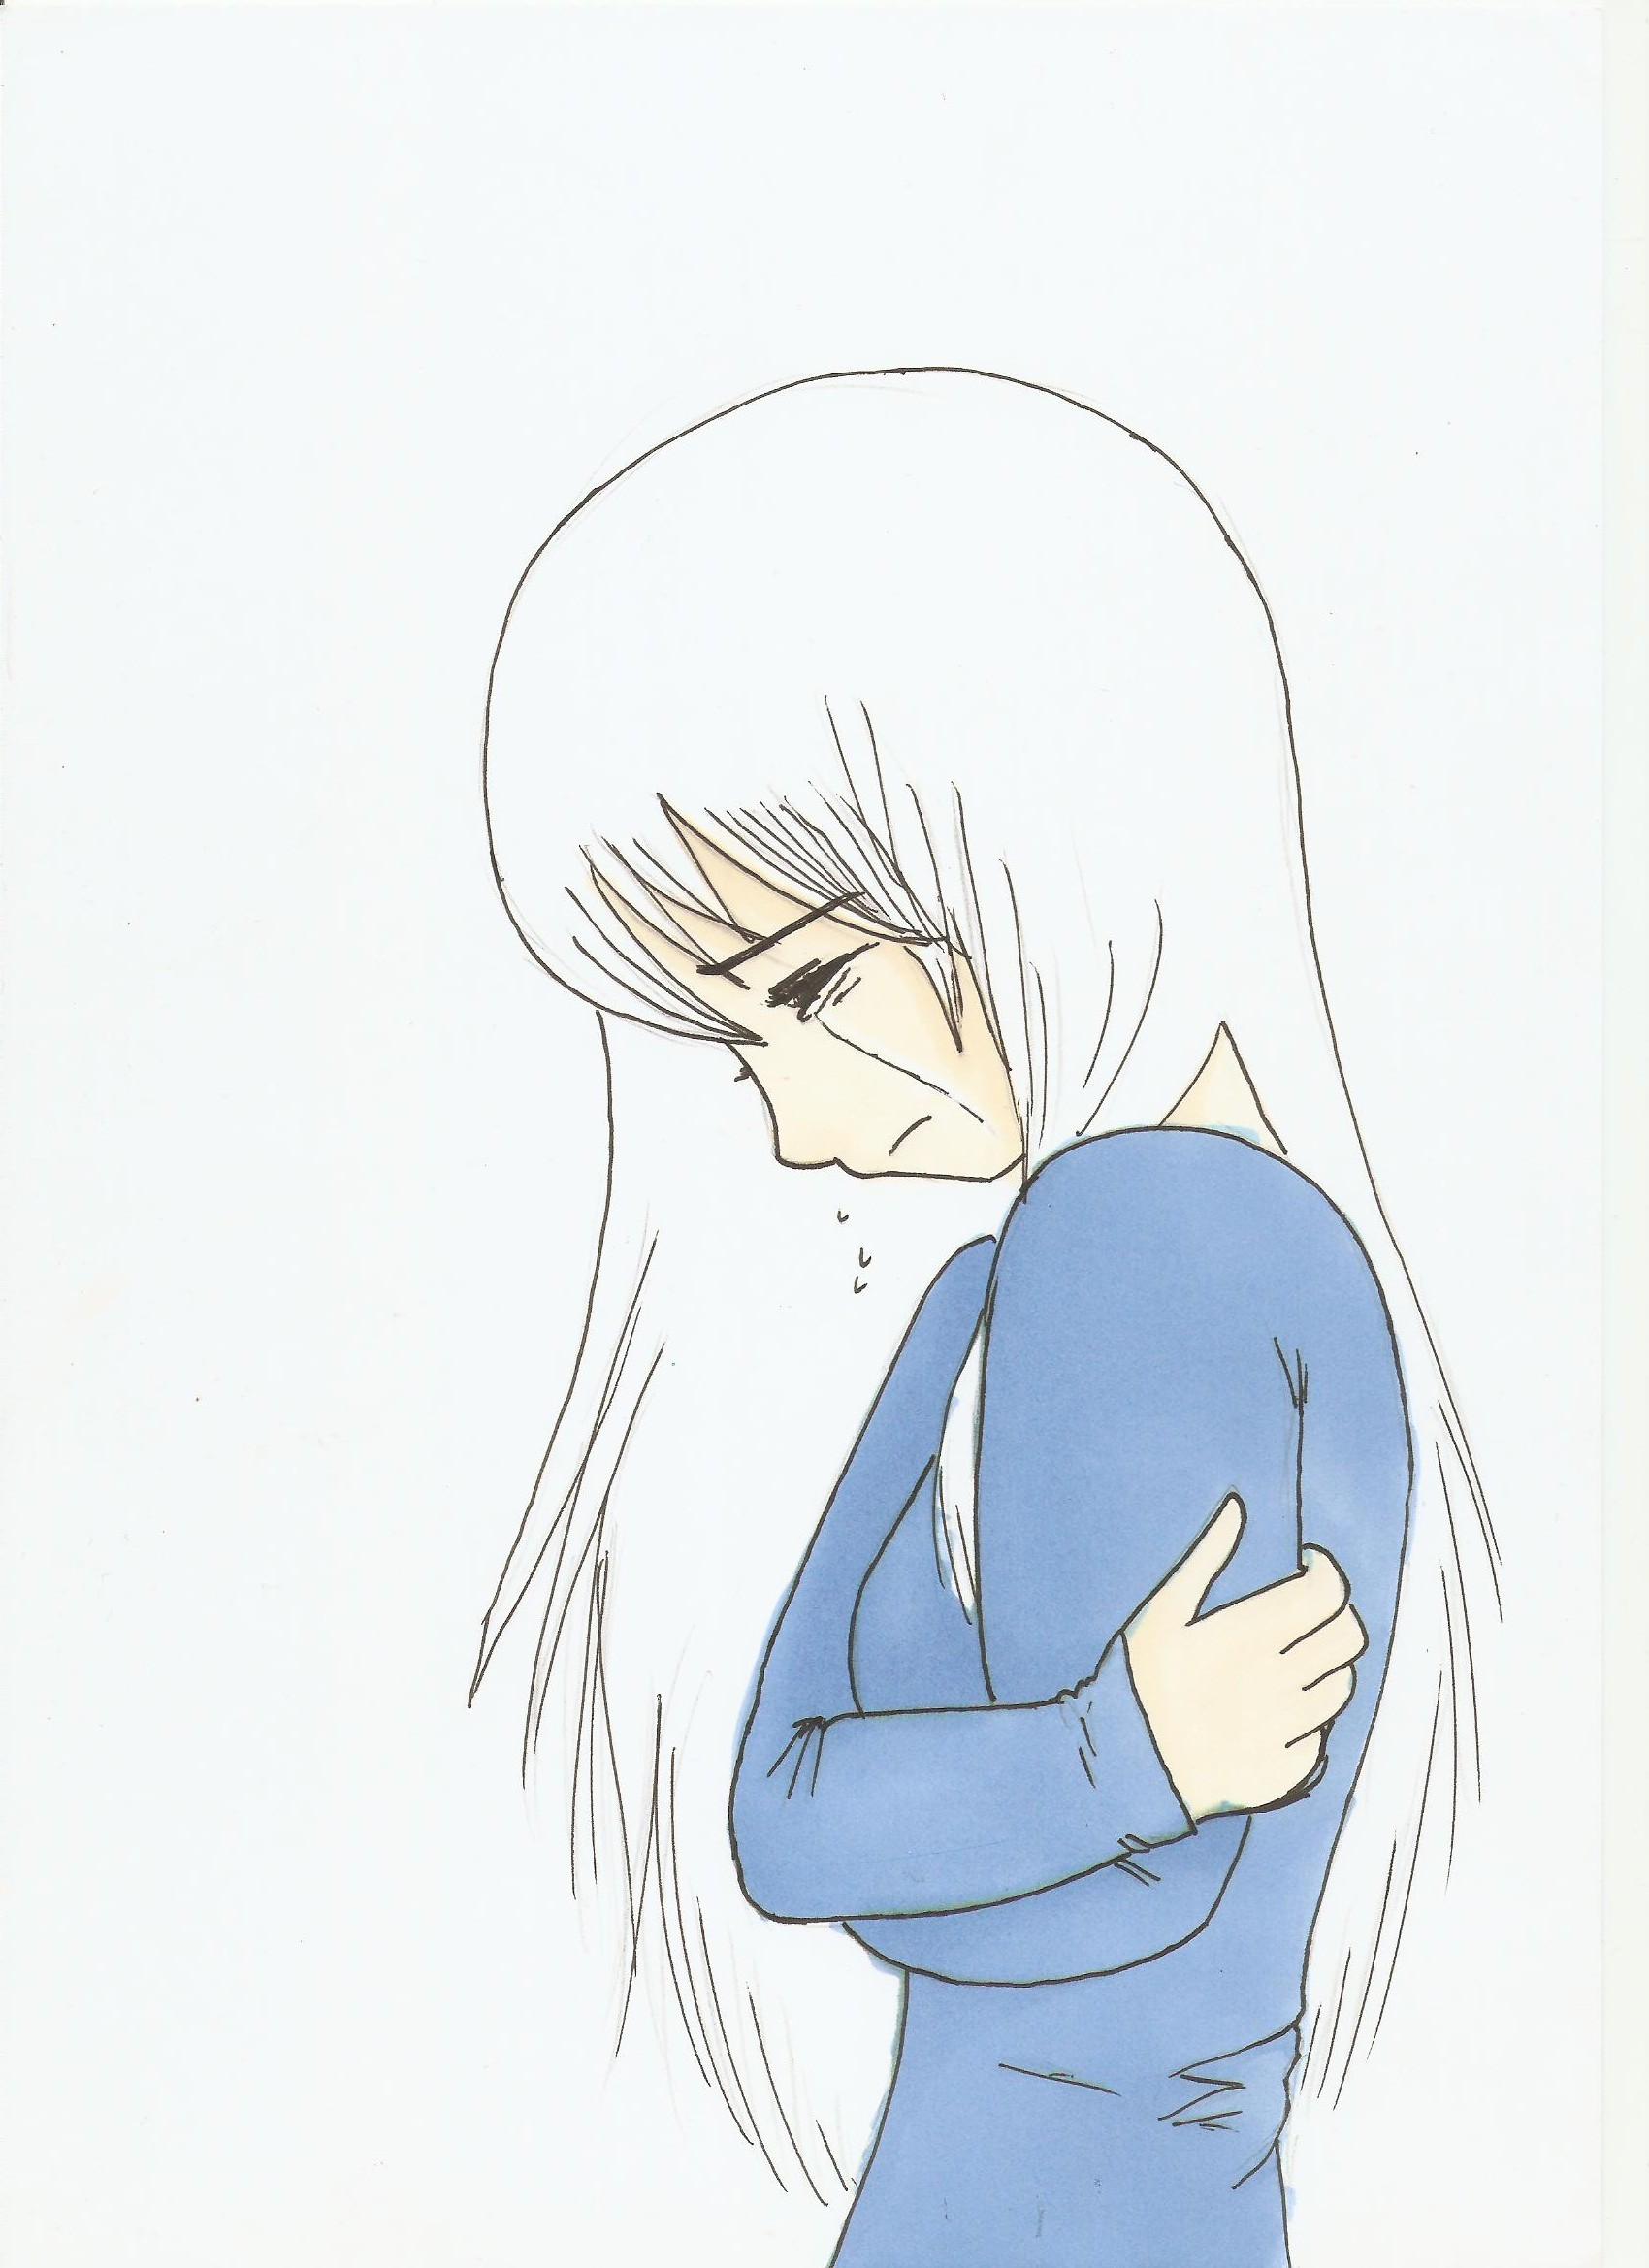 Crying Anime Girl Drawing at GetDrawings | Free download